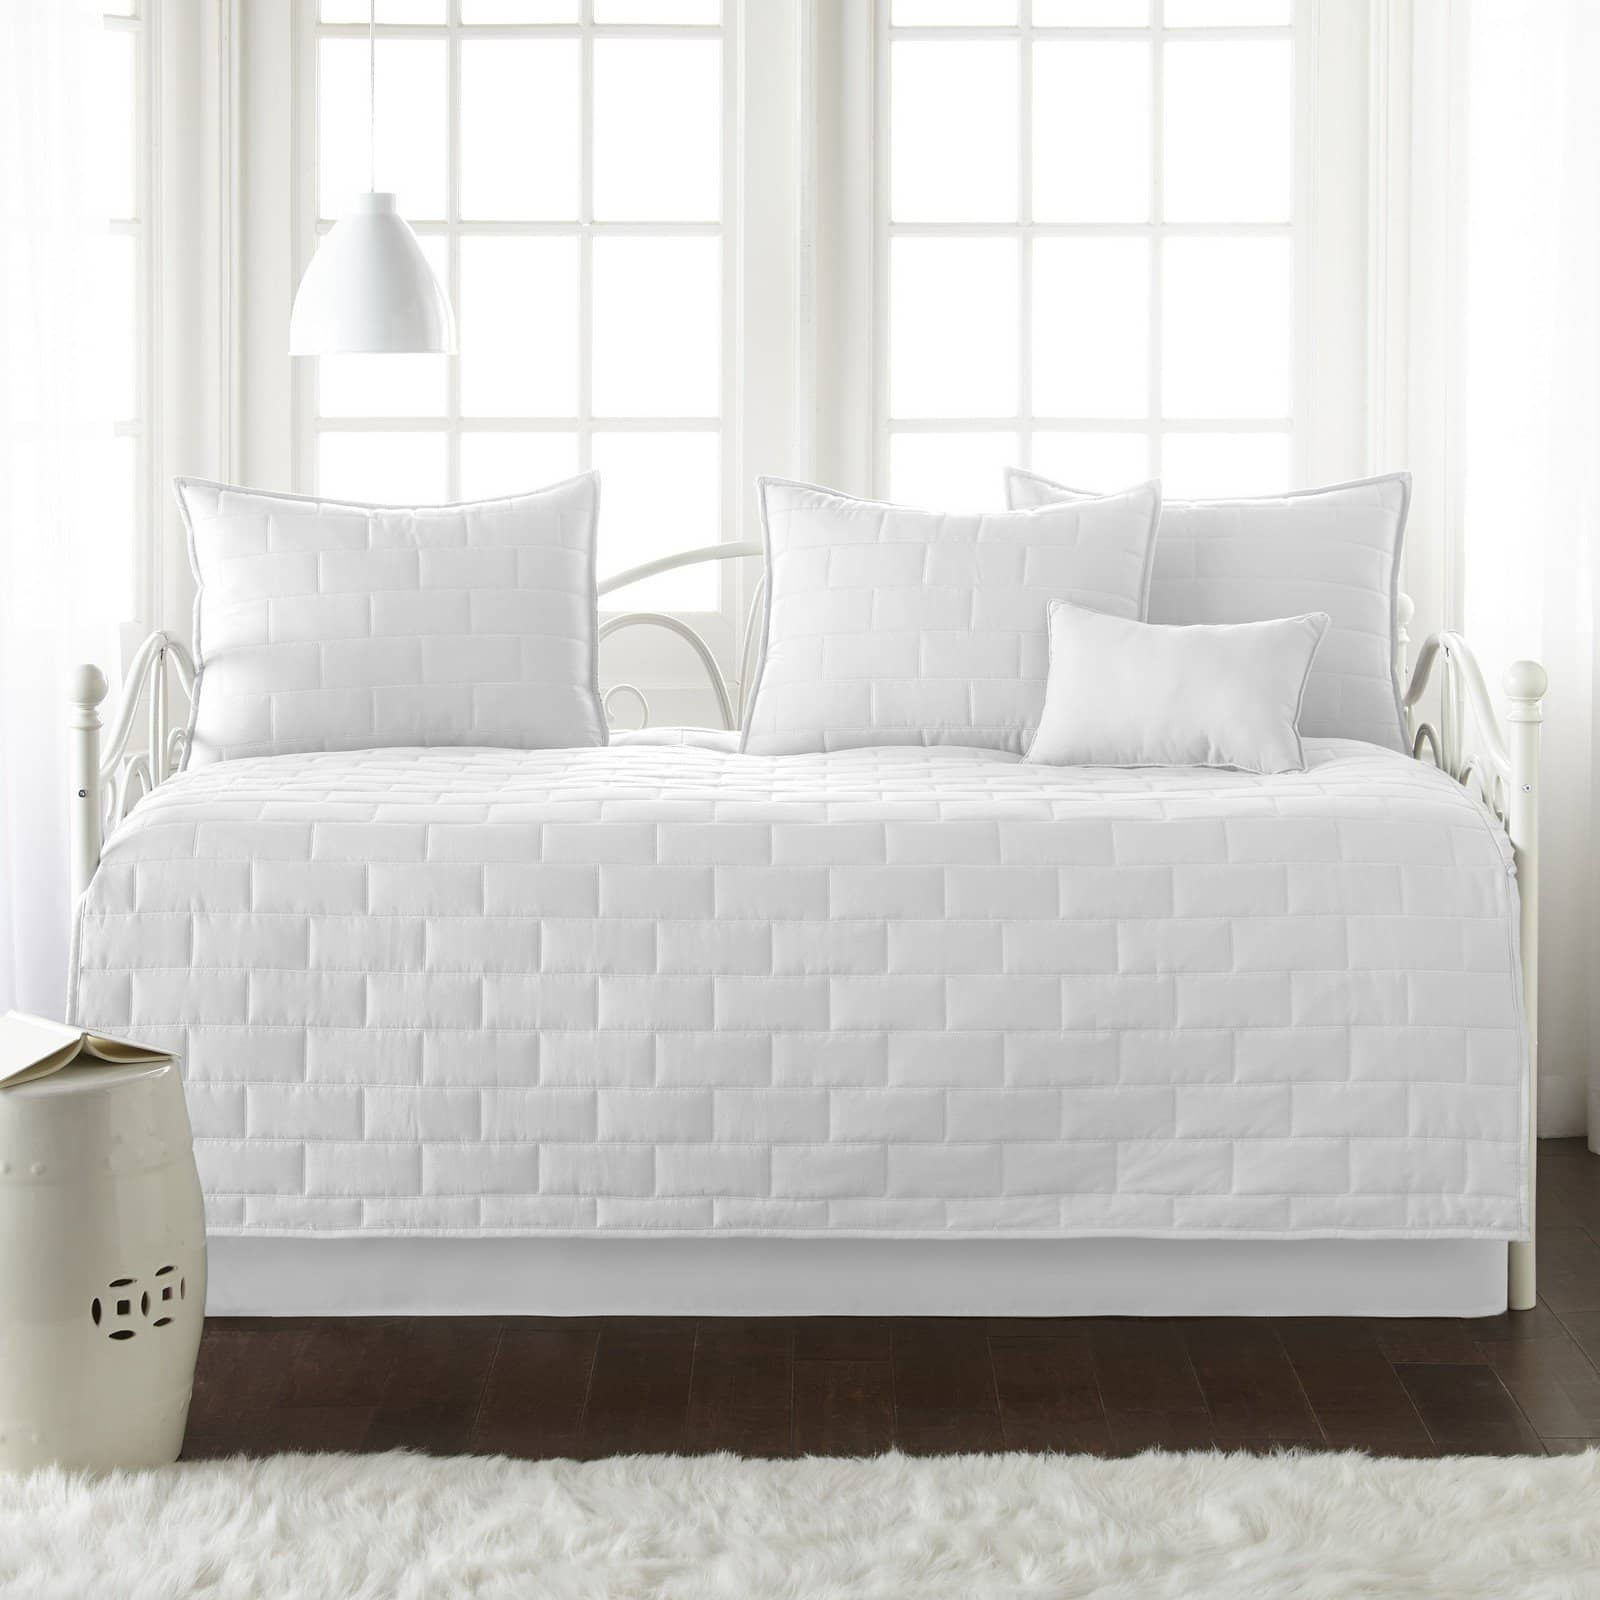 Brickyard Collection Daybed Bedding 6 Piece Set Southshore Fine Linens